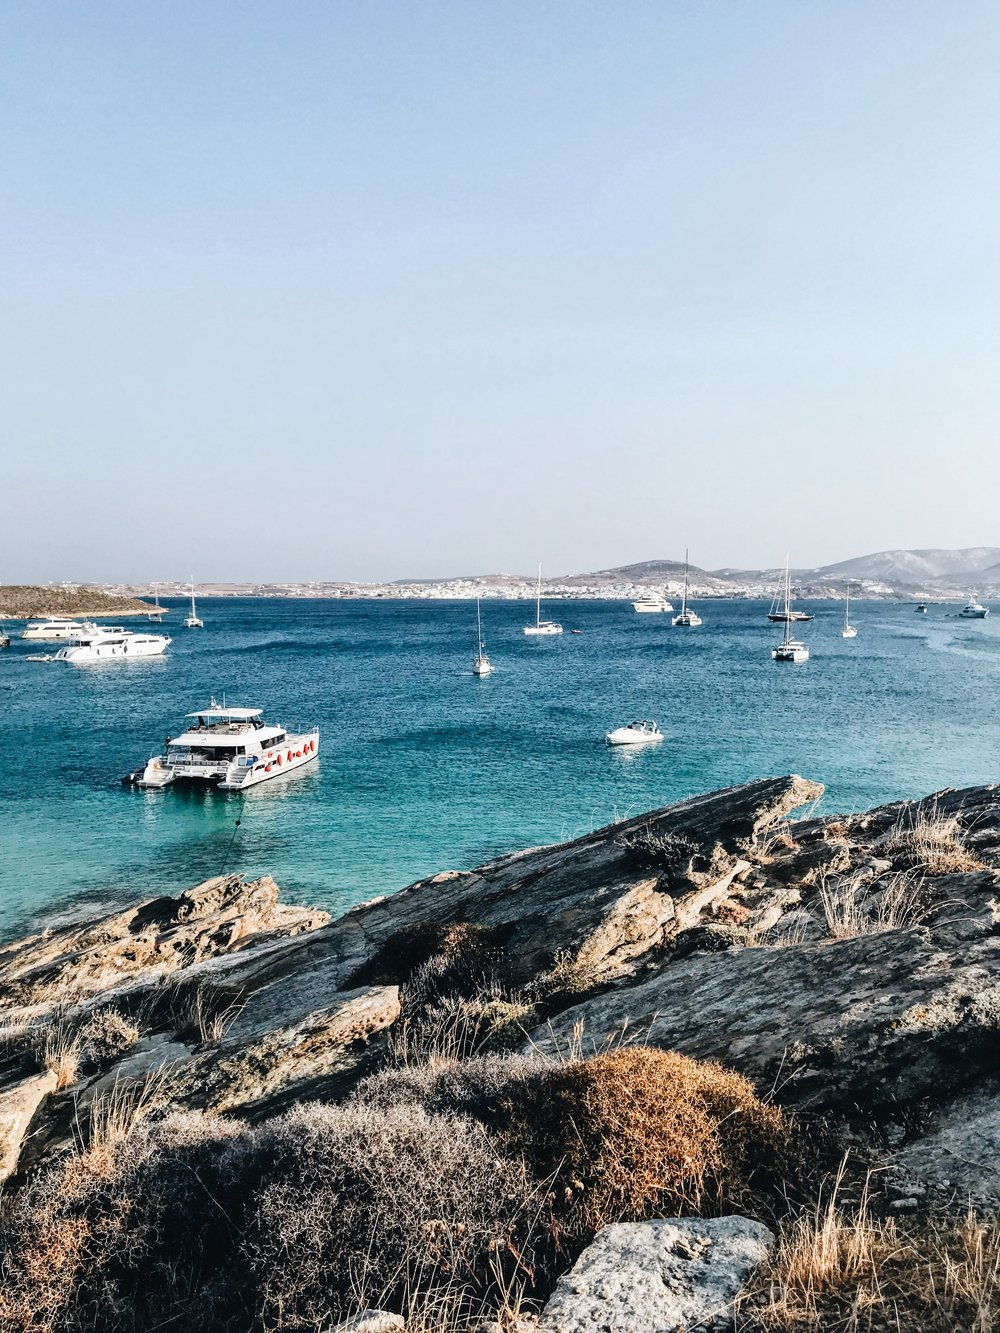 The secluded beach a few minutes walk from Monastiri beach on Paros